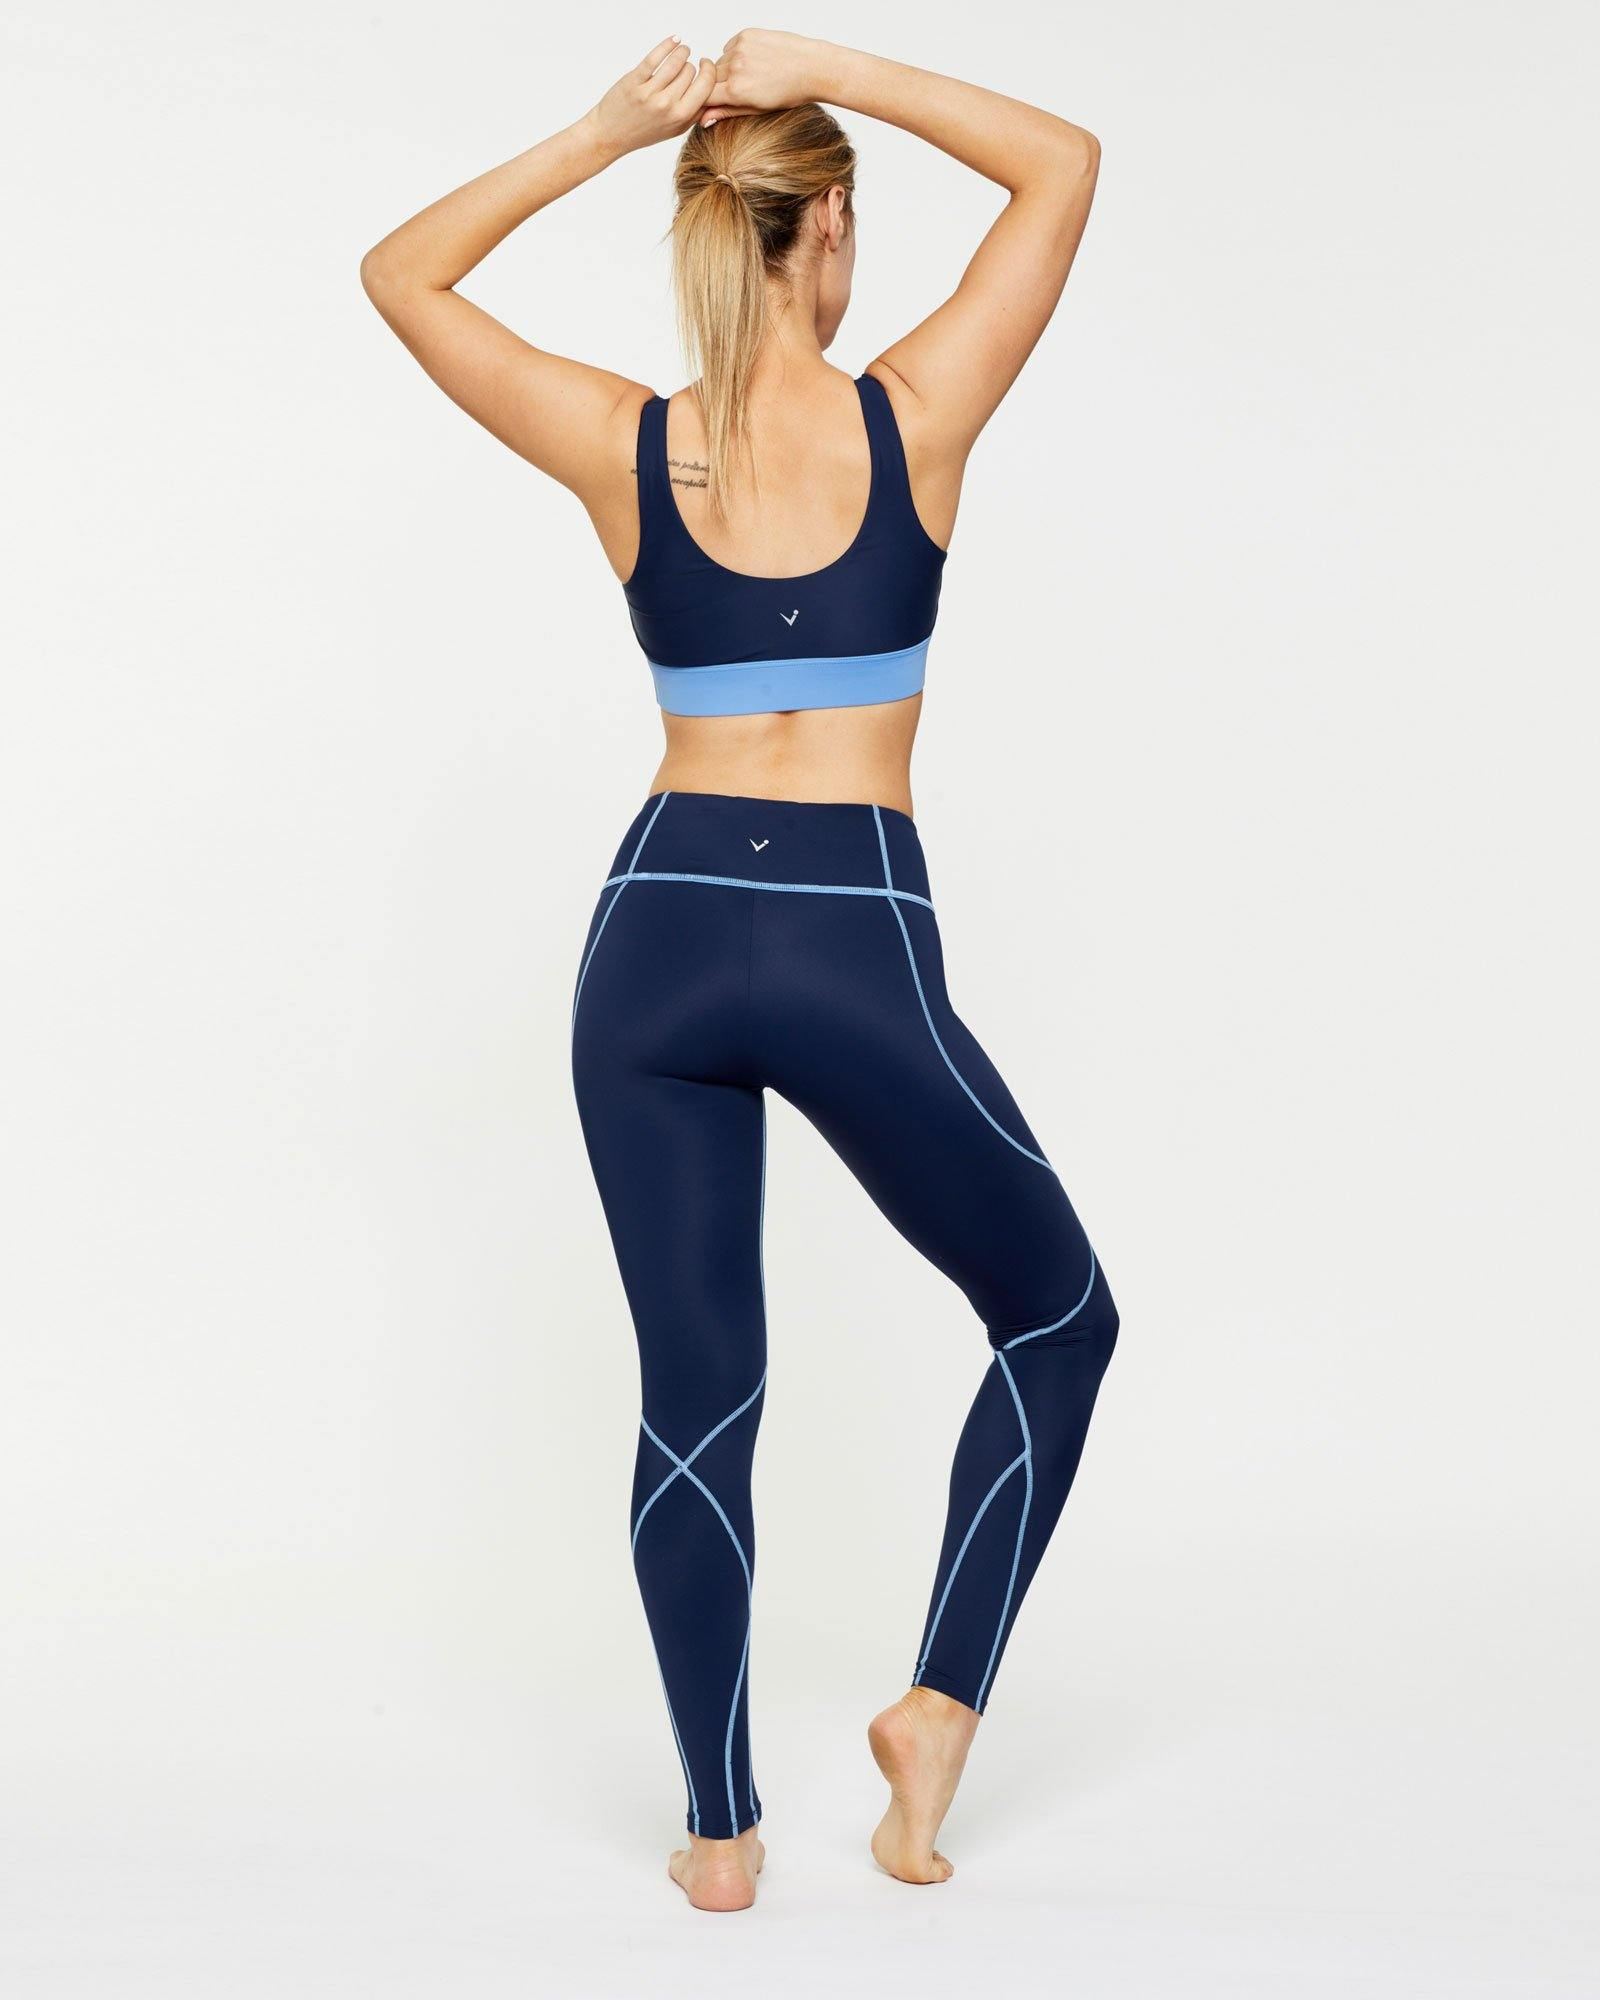 Femininely Vastus mid waist long Navy legging with contrast stitching, back view worn with Pectoralis active bra top, for pilates, barre, yoga, gym and studio workouts